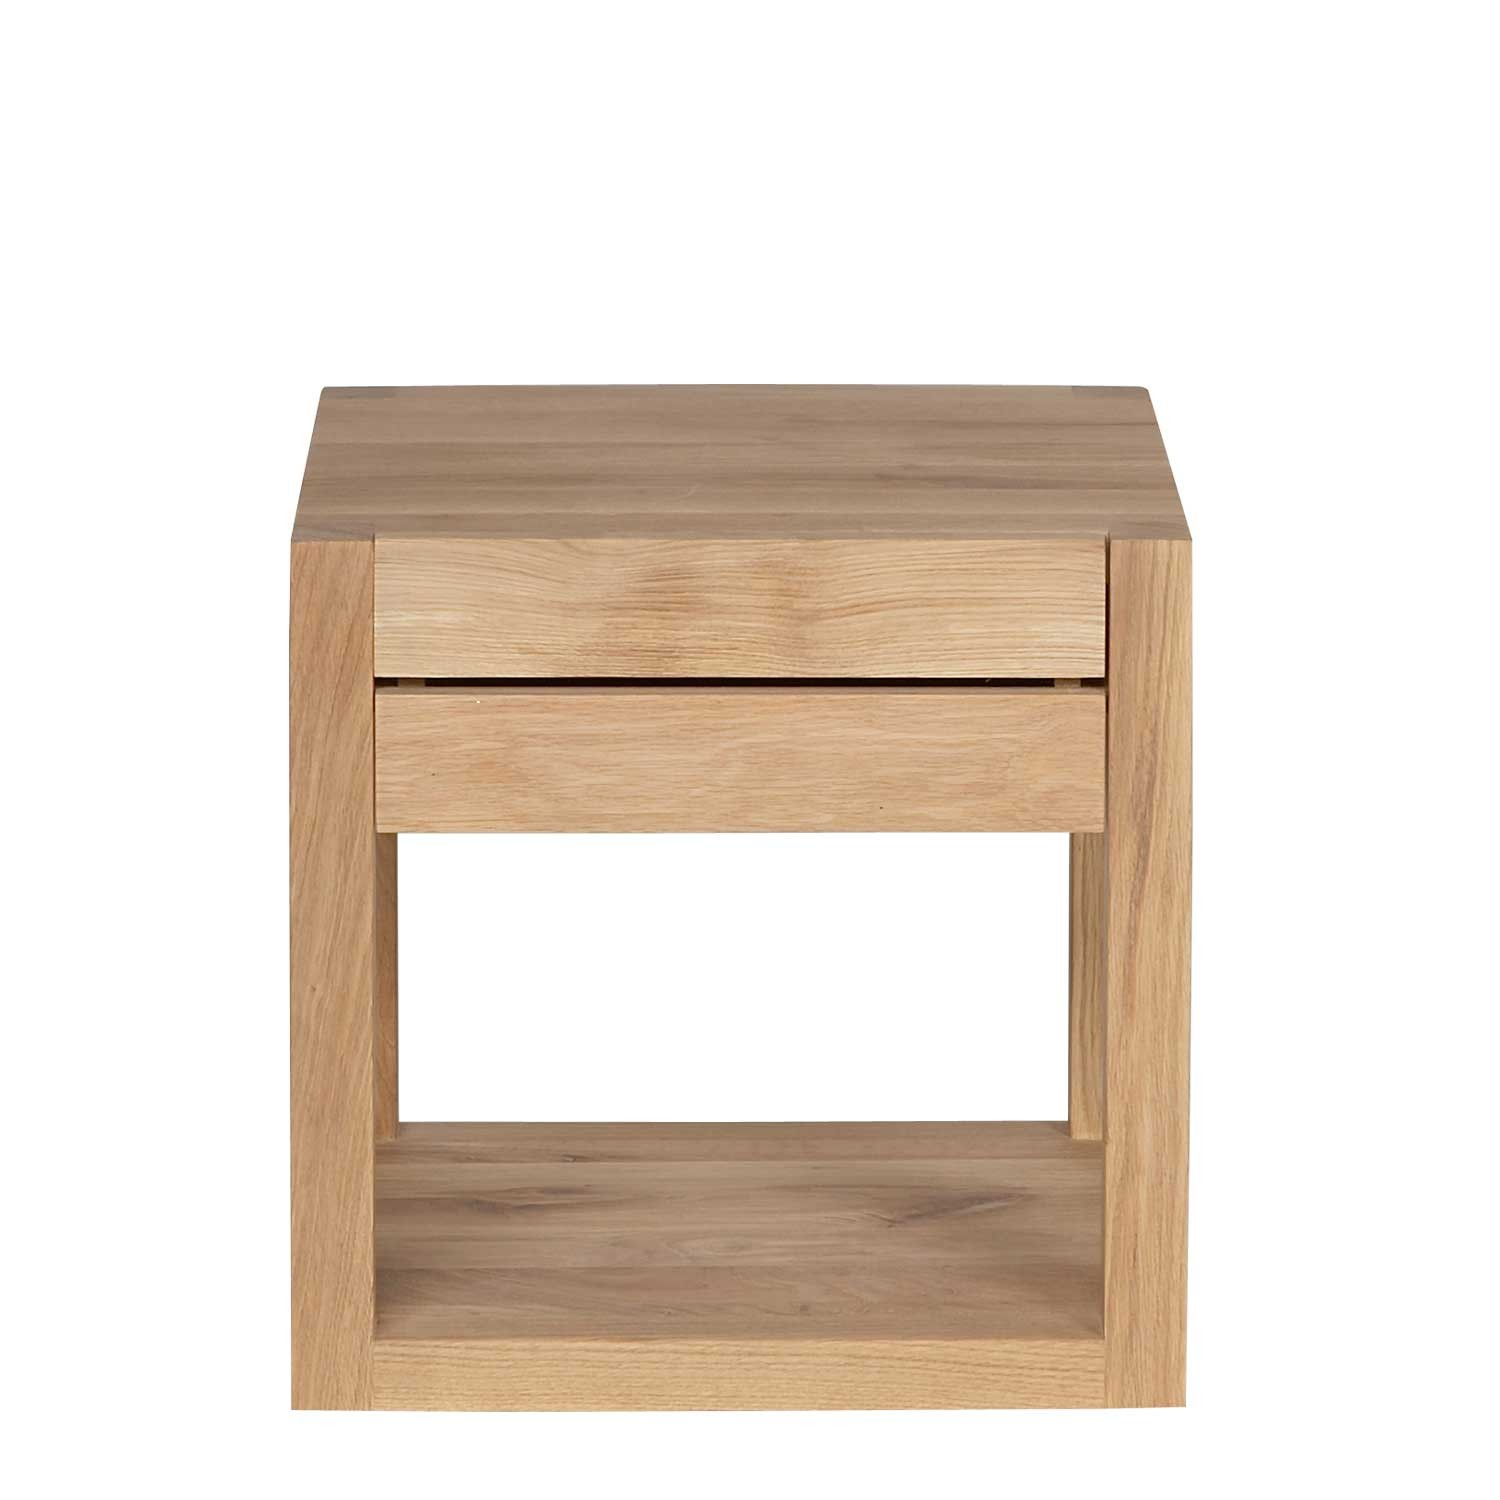 Ethnicraft Azur Oak Bedside Table Solid Wood Furniture